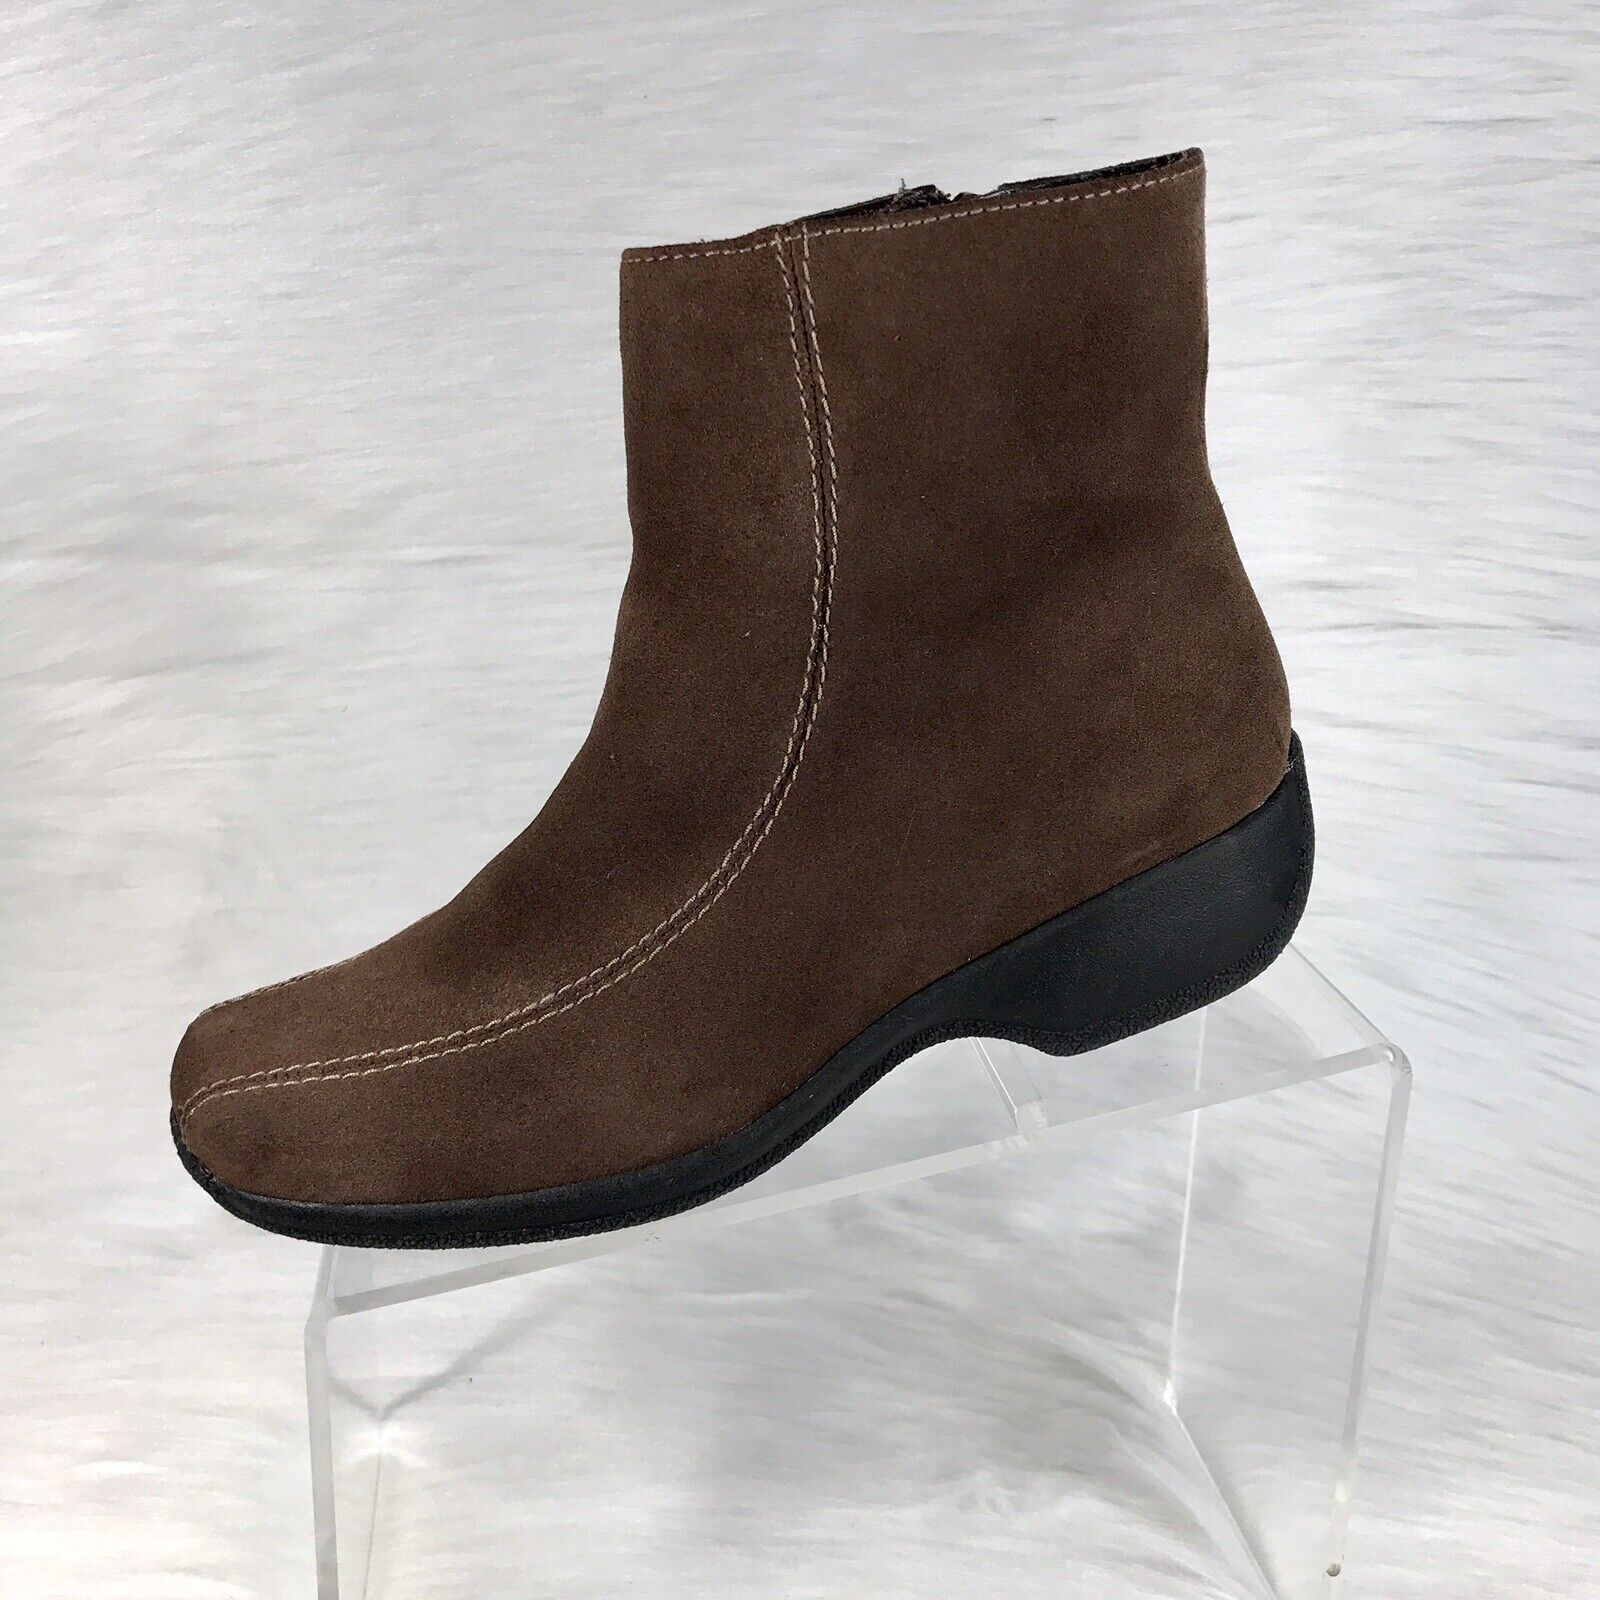 Clarks Women's Ankle Boots Brown Suede Size 7.5 W